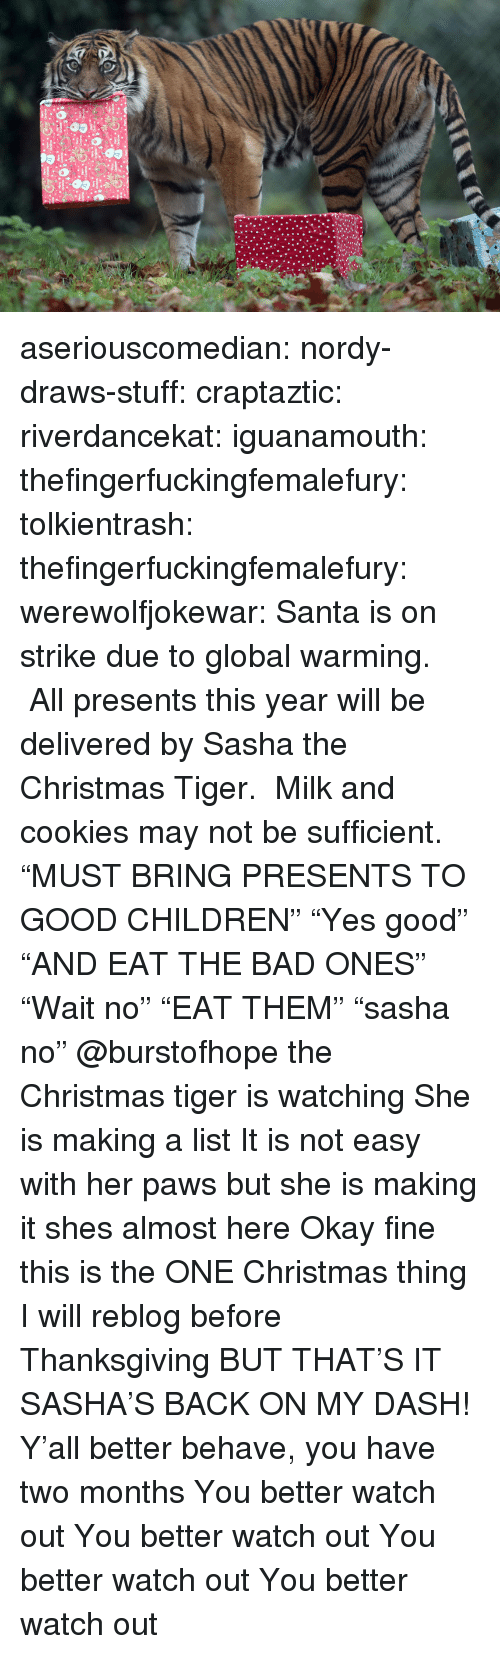 """sasha: aseriouscomedian:  nordy-draws-stuff:   craptaztic:  riverdancekat:  iguanamouth:  thefingerfuckingfemalefury:  tolkientrash:  thefingerfuckingfemalefury:  werewolfjokewar:  Santa is on strike due to global warming. All presents this year will be delivered by Sasha the Christmas Tiger. Milk and cookies may not be sufficient.  """"MUST BRING PRESENTS TO GOOD CHILDREN"""" """"Yes good"""" """"AND EAT THE BAD ONES""""  """"Wait no"""" """"EAT THEM"""" """"sasha no""""   @burstofhope the Christmas tiger is watching  She is making a list  It is not easy with her paws but she is making it   shes almost here   Okay fine this is the ONE Christmas thing I will reblog before Thanksgiving BUT THAT'S IT  SASHA'S BACK ON MY DASH!  Y'all better behave, you have two months   You better watch out You better watch out You better watch out You better watch out"""